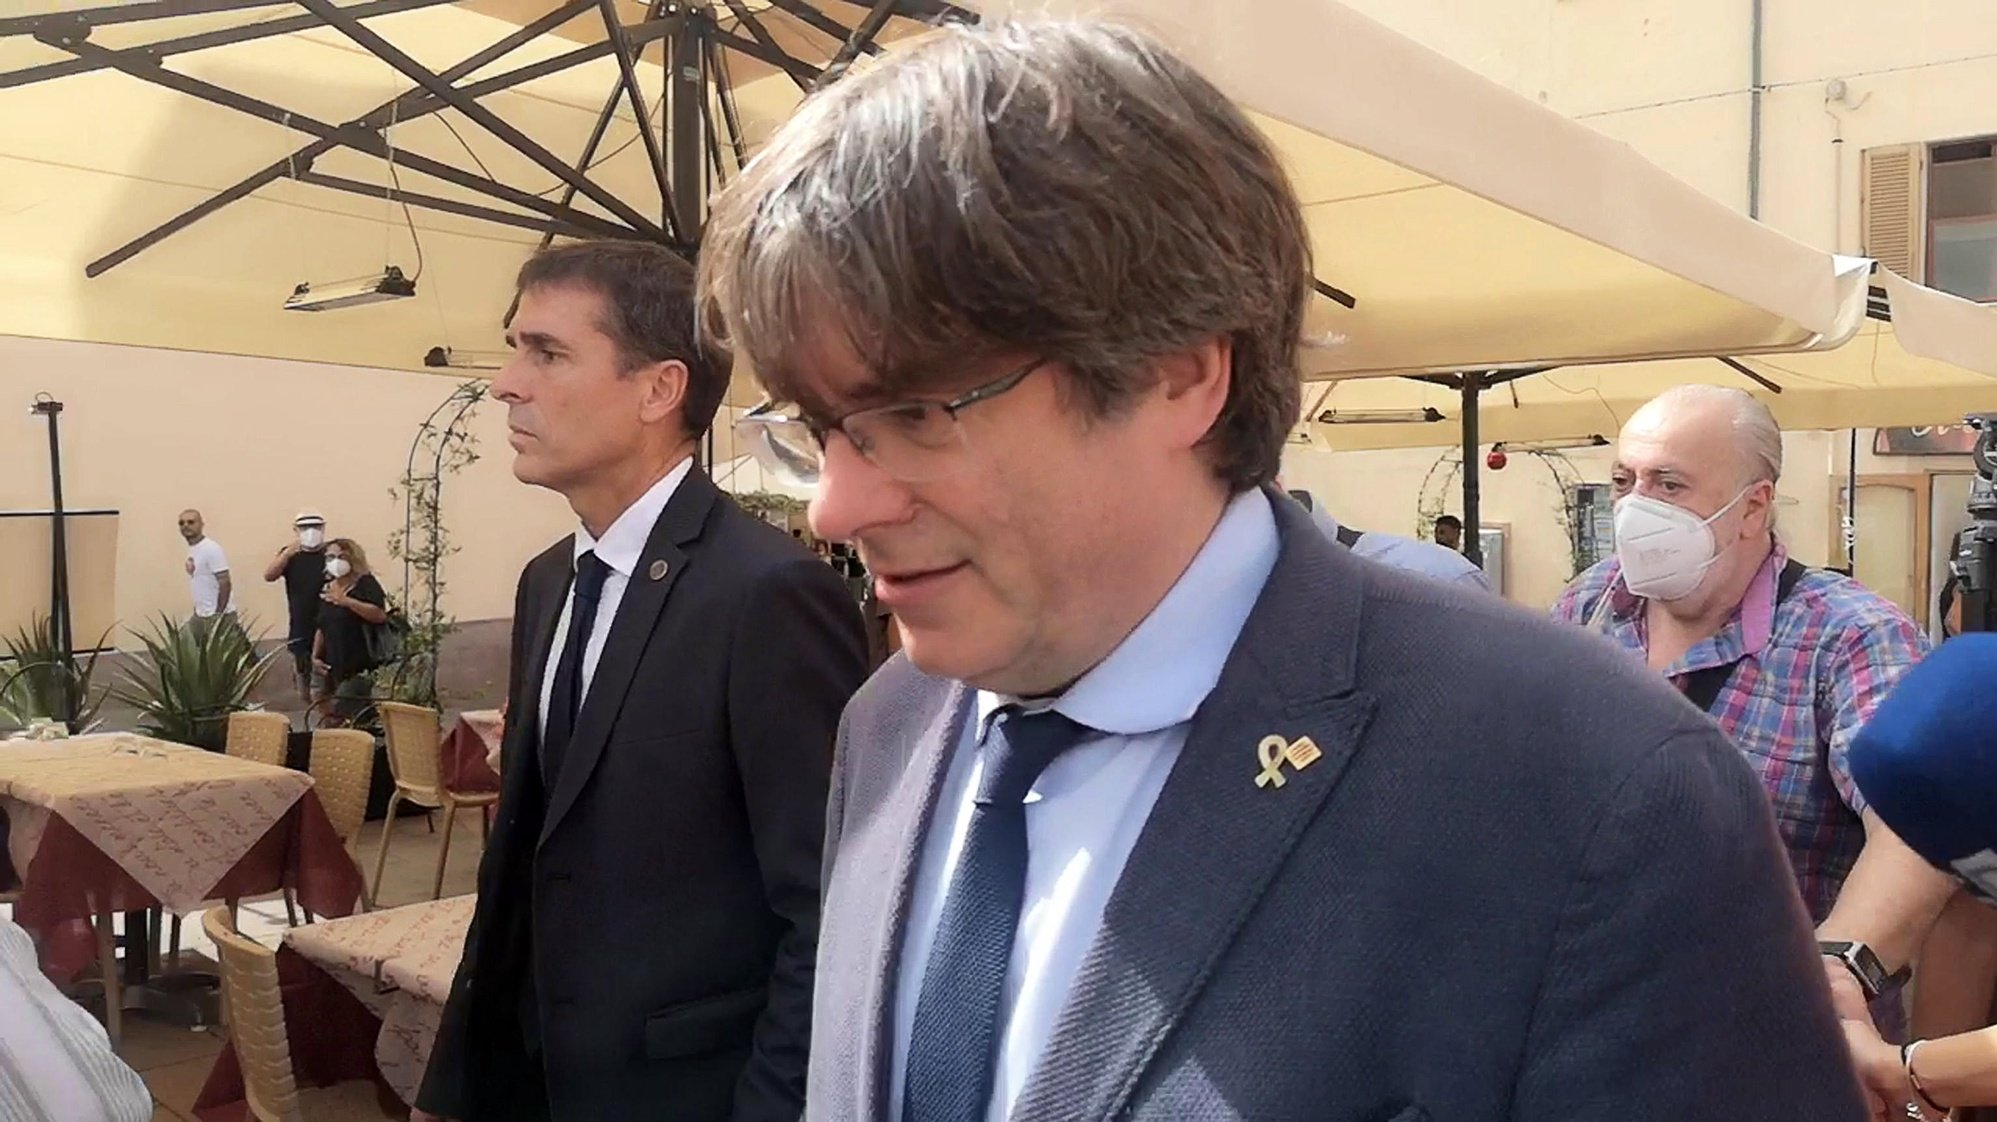 epa09487192 A frame grab made from a video shows former Catalan regional premier Carles Puigdemont in Alghero, Sardinia, 25 September 2021. Catalan pro-independent leader and former regional President Carles Puigdemont was released from an arrest on Friday 24 September after he was arrested in the Italian island of Sardinia a day earlier in the evening, under a international warrant asked by Spanish authorities, four years after he run away from judicial authorities amid the inquiry of the illegal referendum held in Catalonia in 2017.  EPA/SIAS BEST QUALITY AVAILABLE